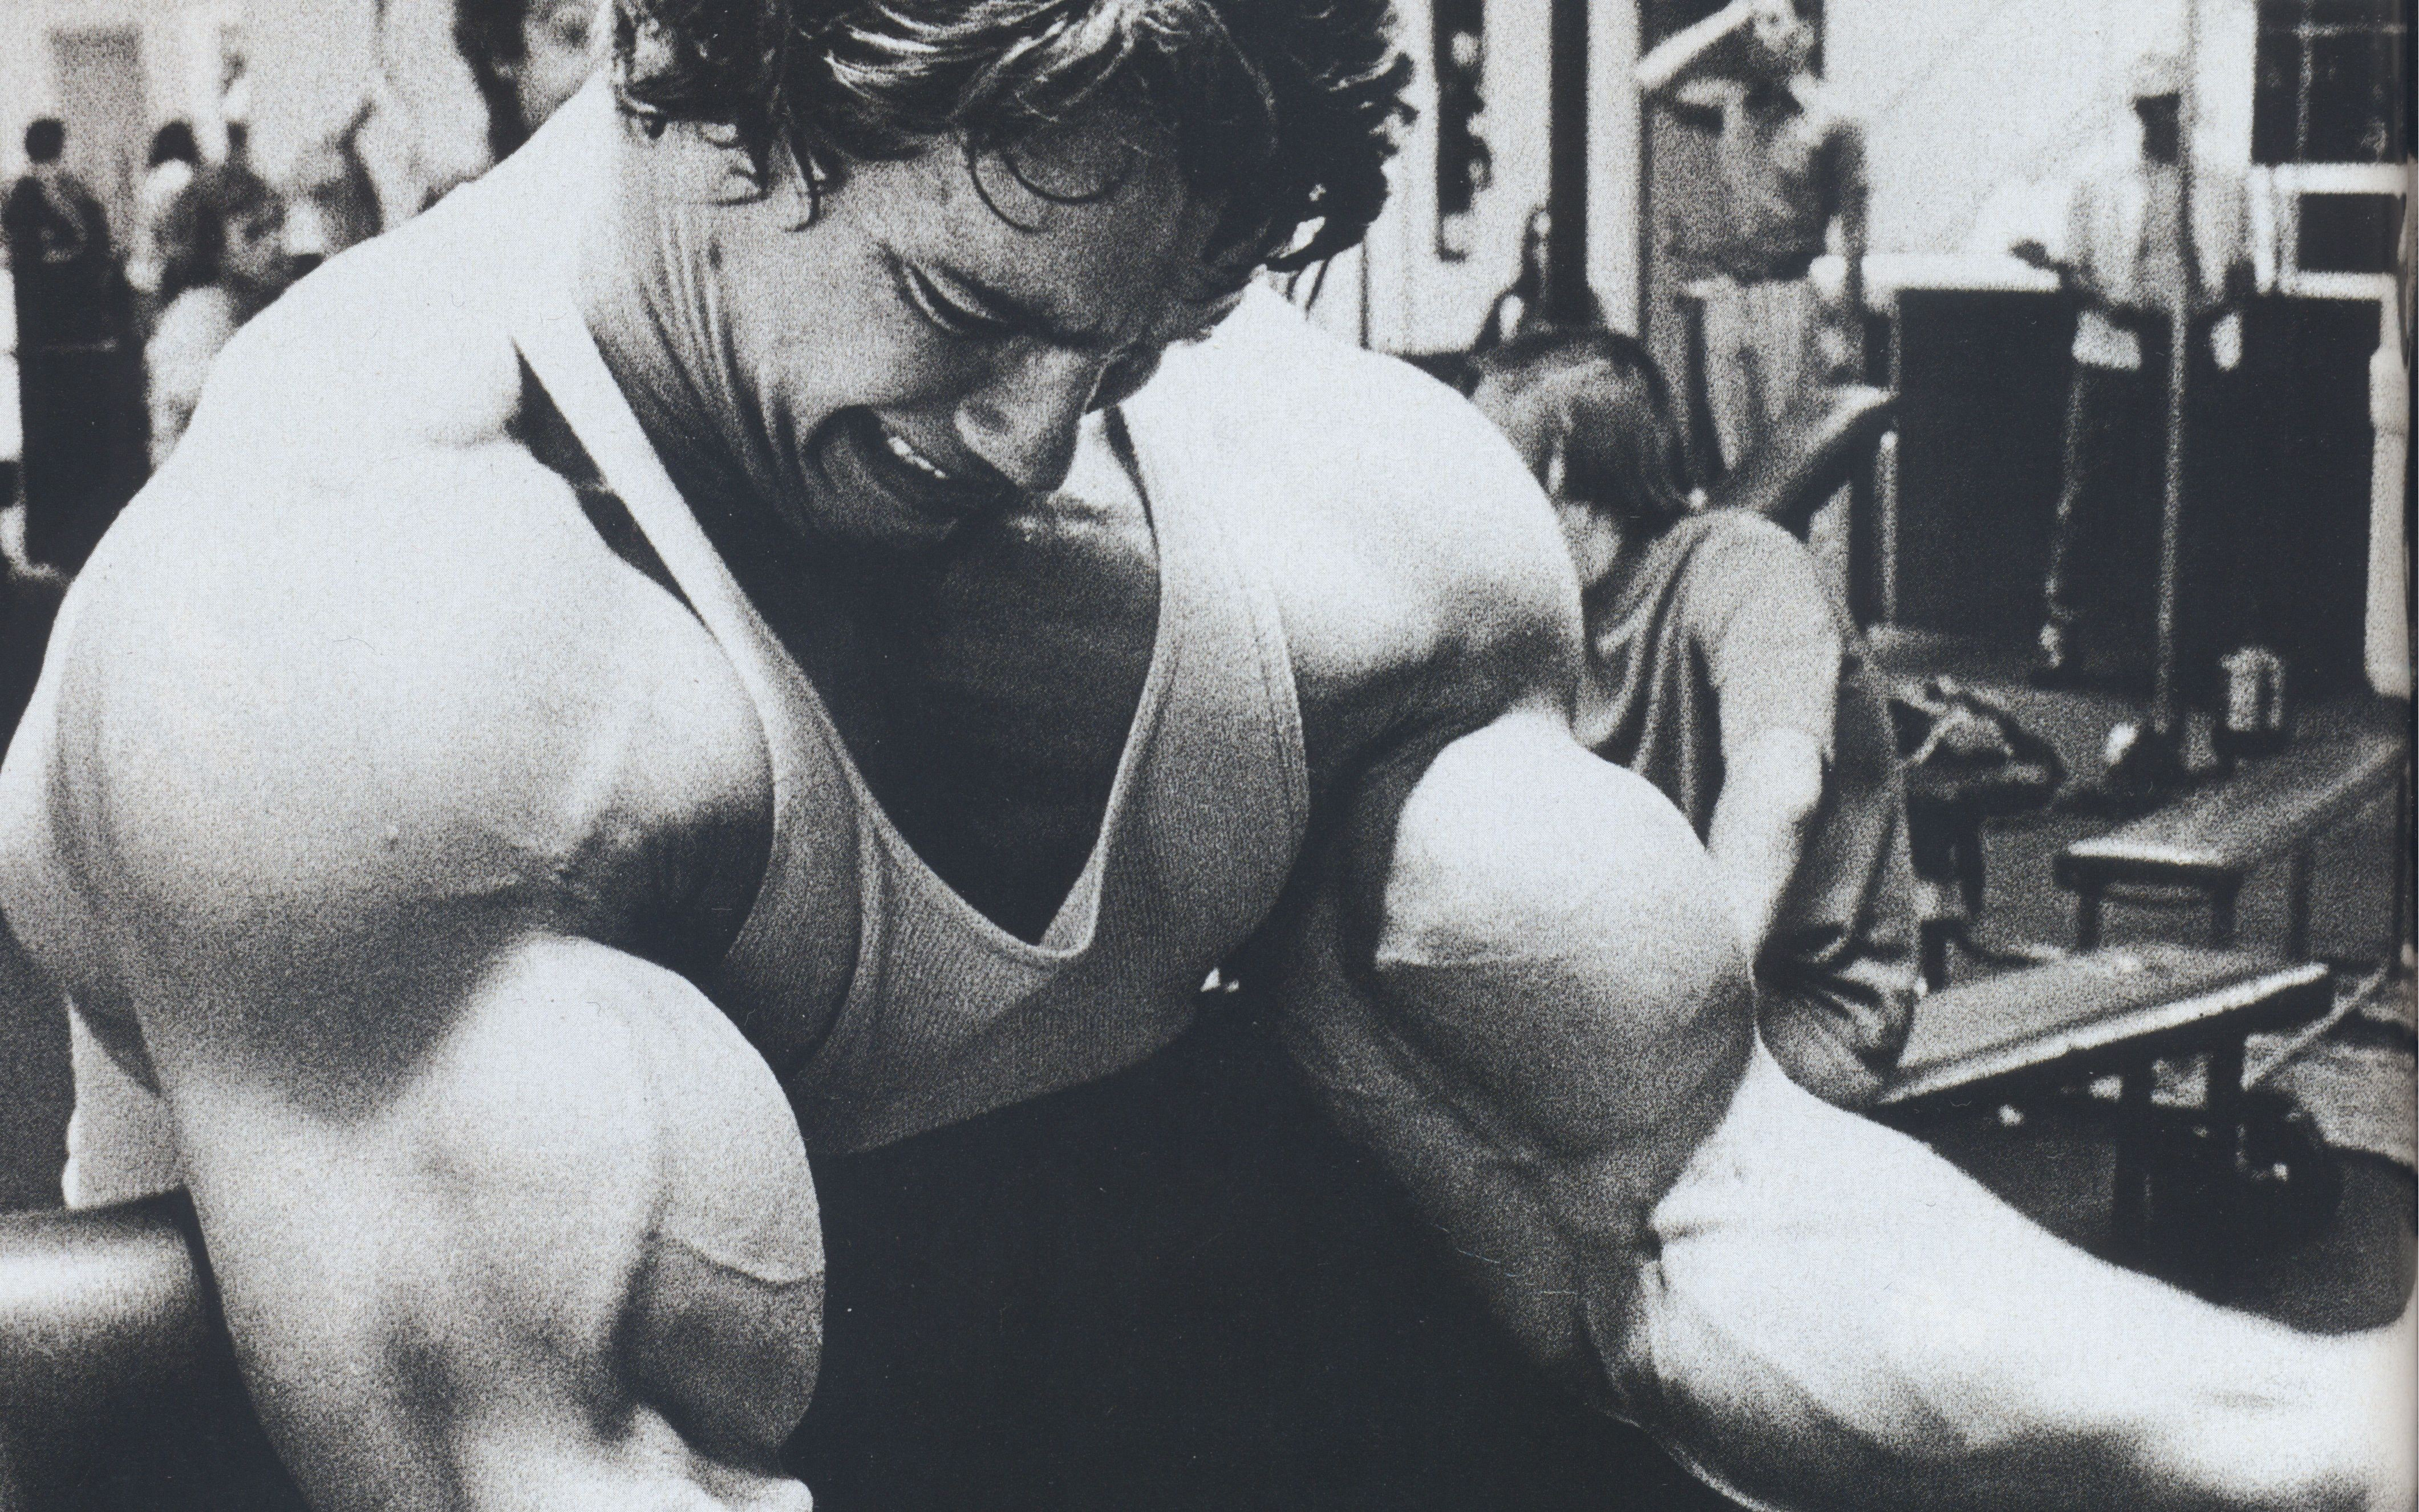 arnold_schwarzenegger_actor_producer_director_young_bodybuilding_74040_4241x2651